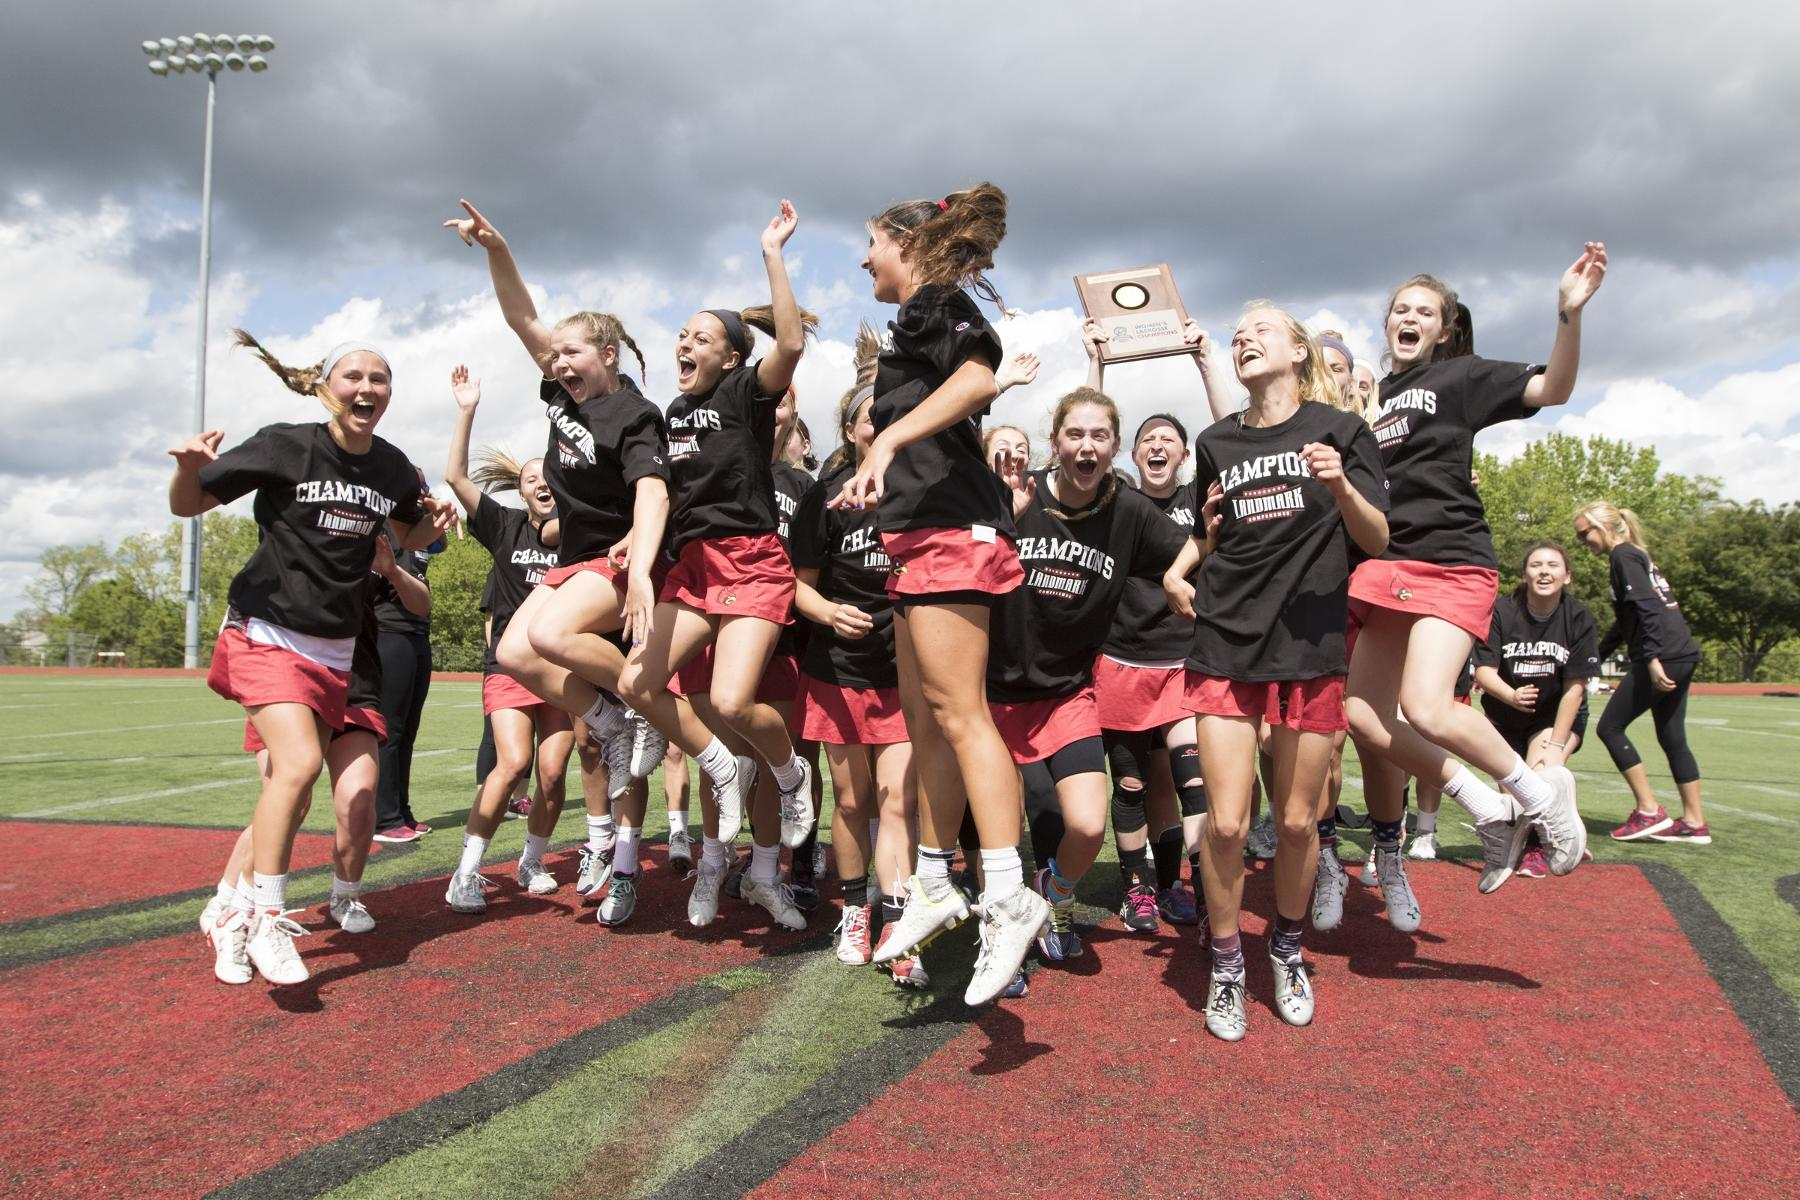 Catholic's most recent Landmark Conference Championship, the 2016 women's lacrosse team, went on to advance to the NCAA National Quarterfinal.